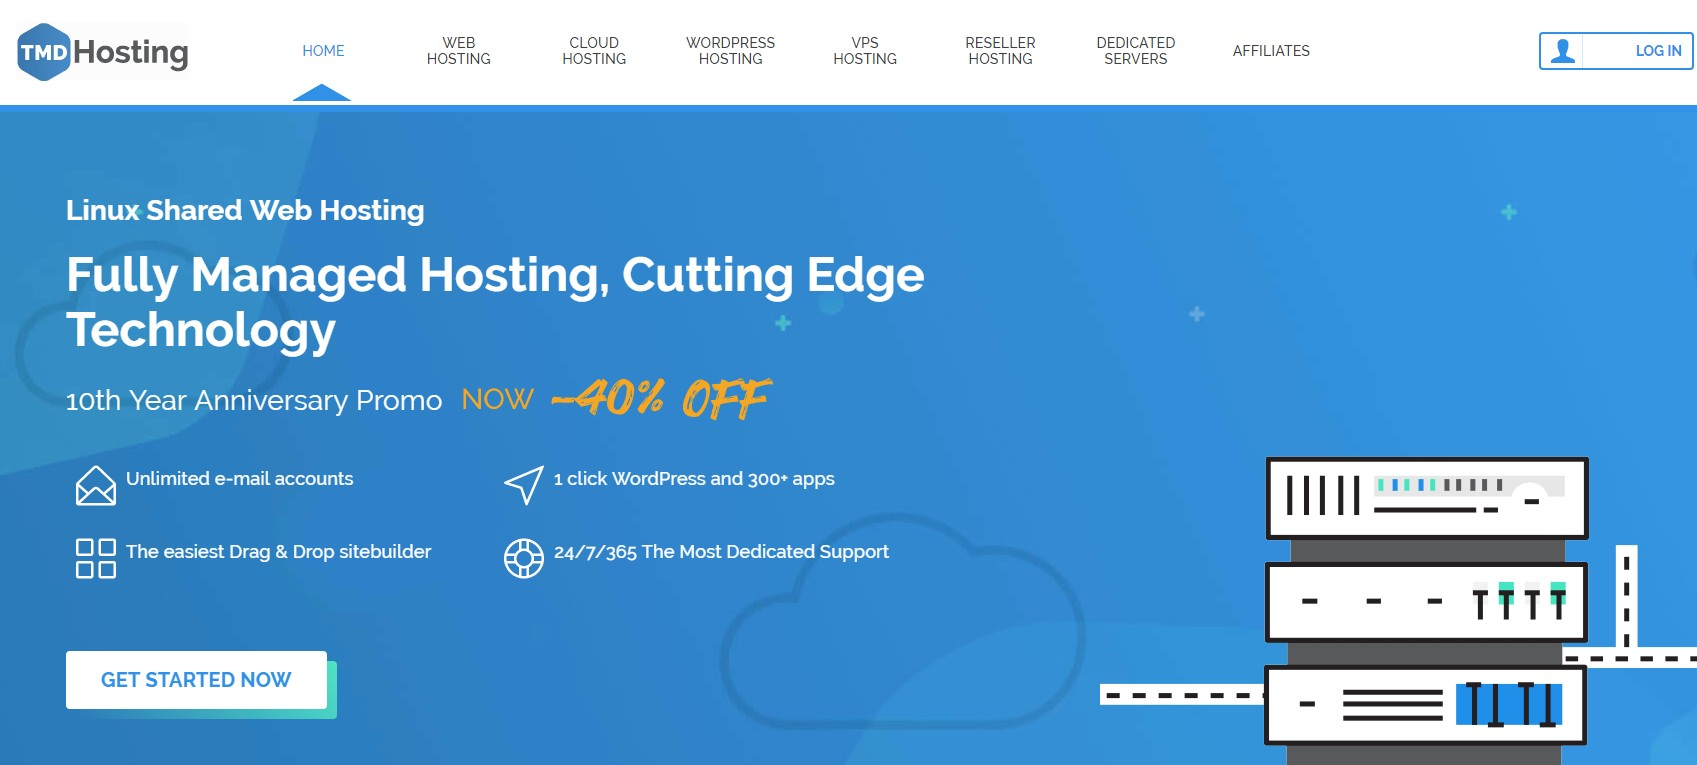 Best Web Hosting for artists TMDHosting